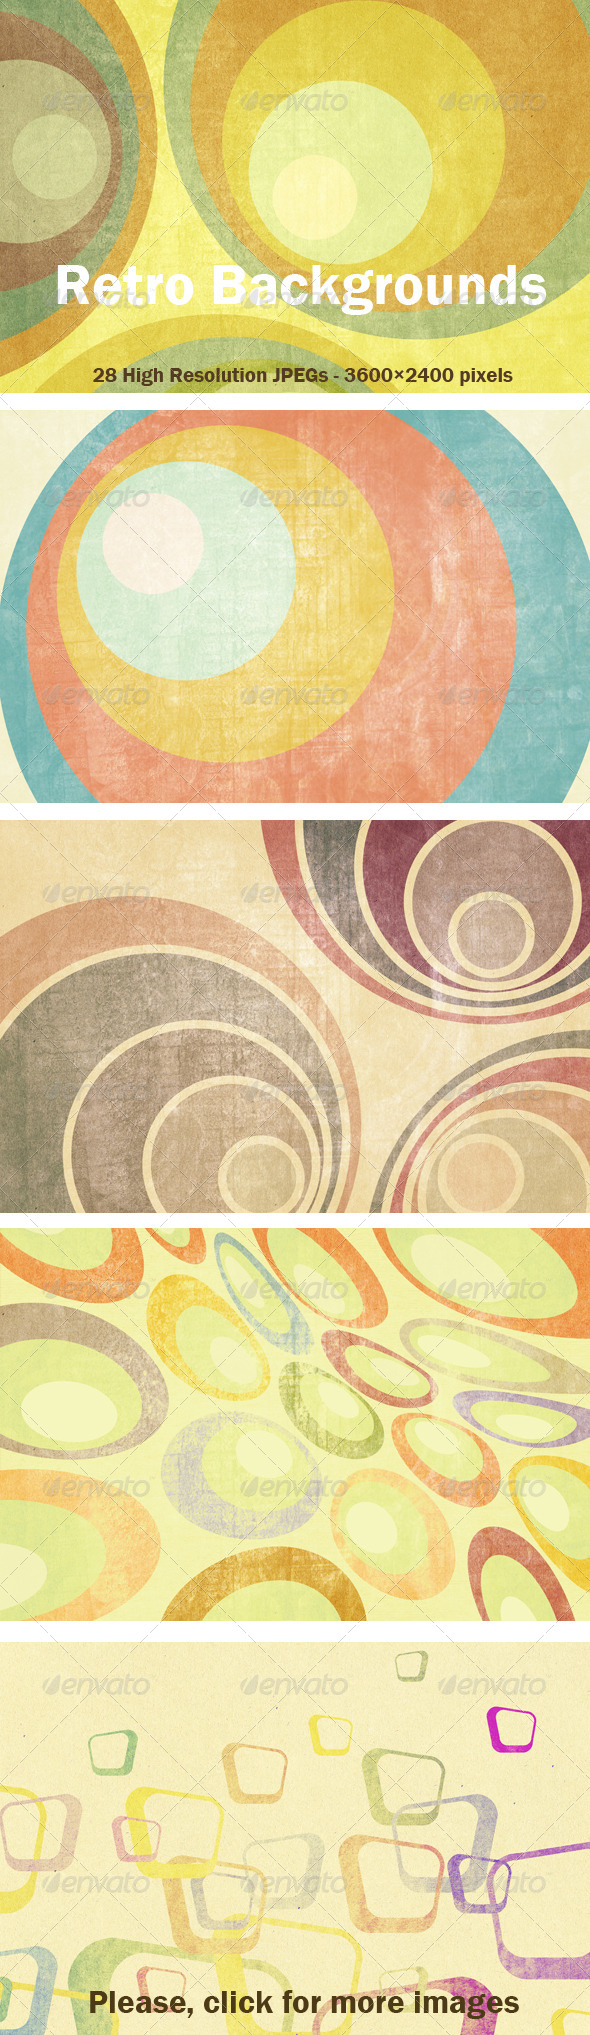 22 Retro Backgrounds - Patterns Backgrounds